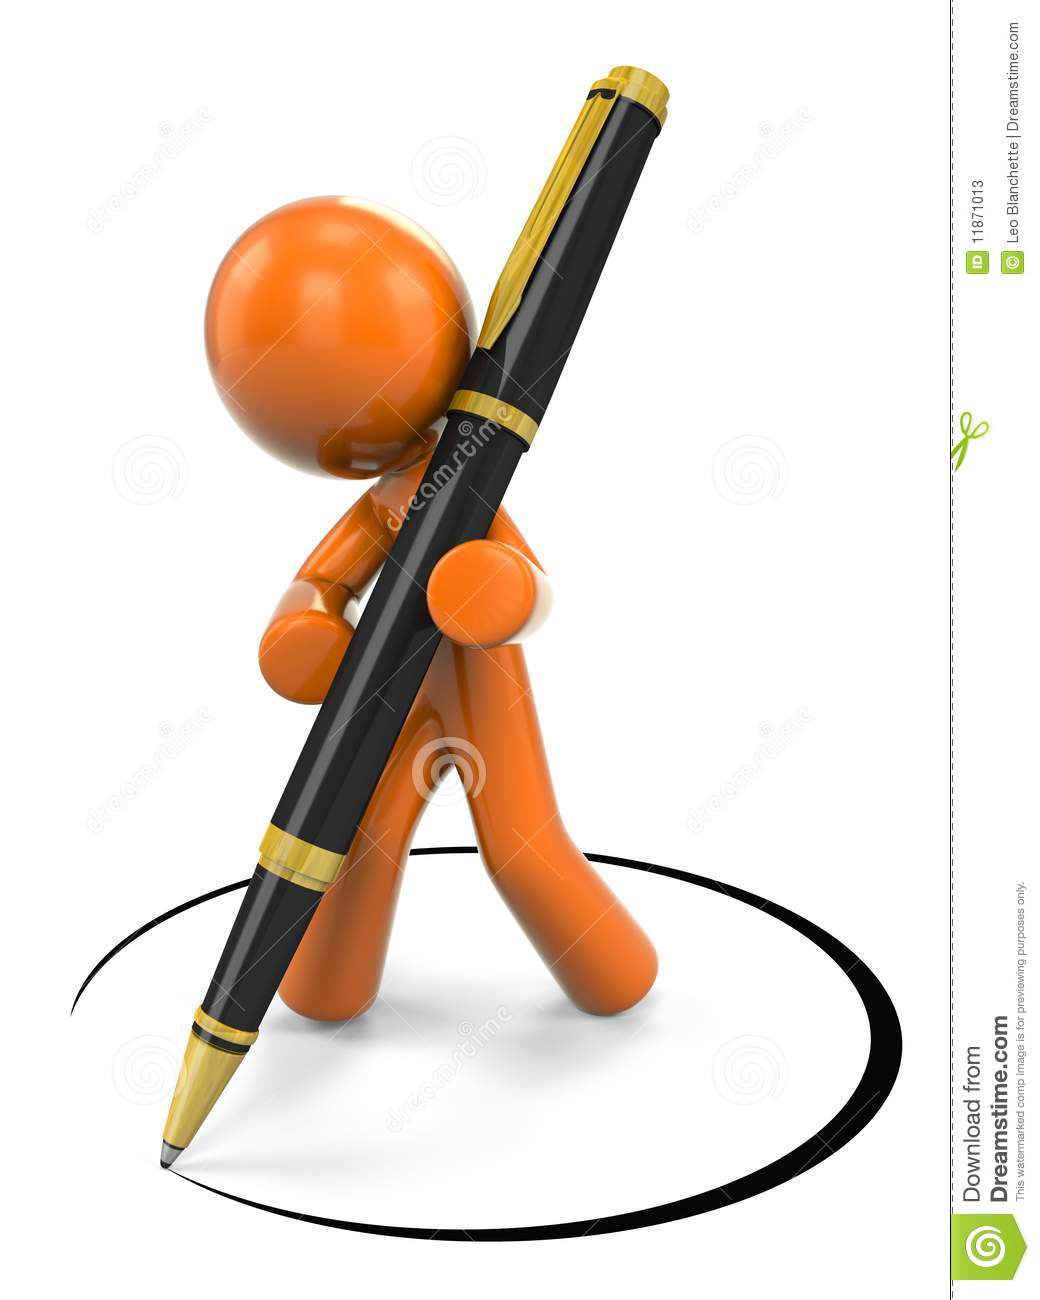 Happy Cartoon Pen Clipart - Clipart Kid